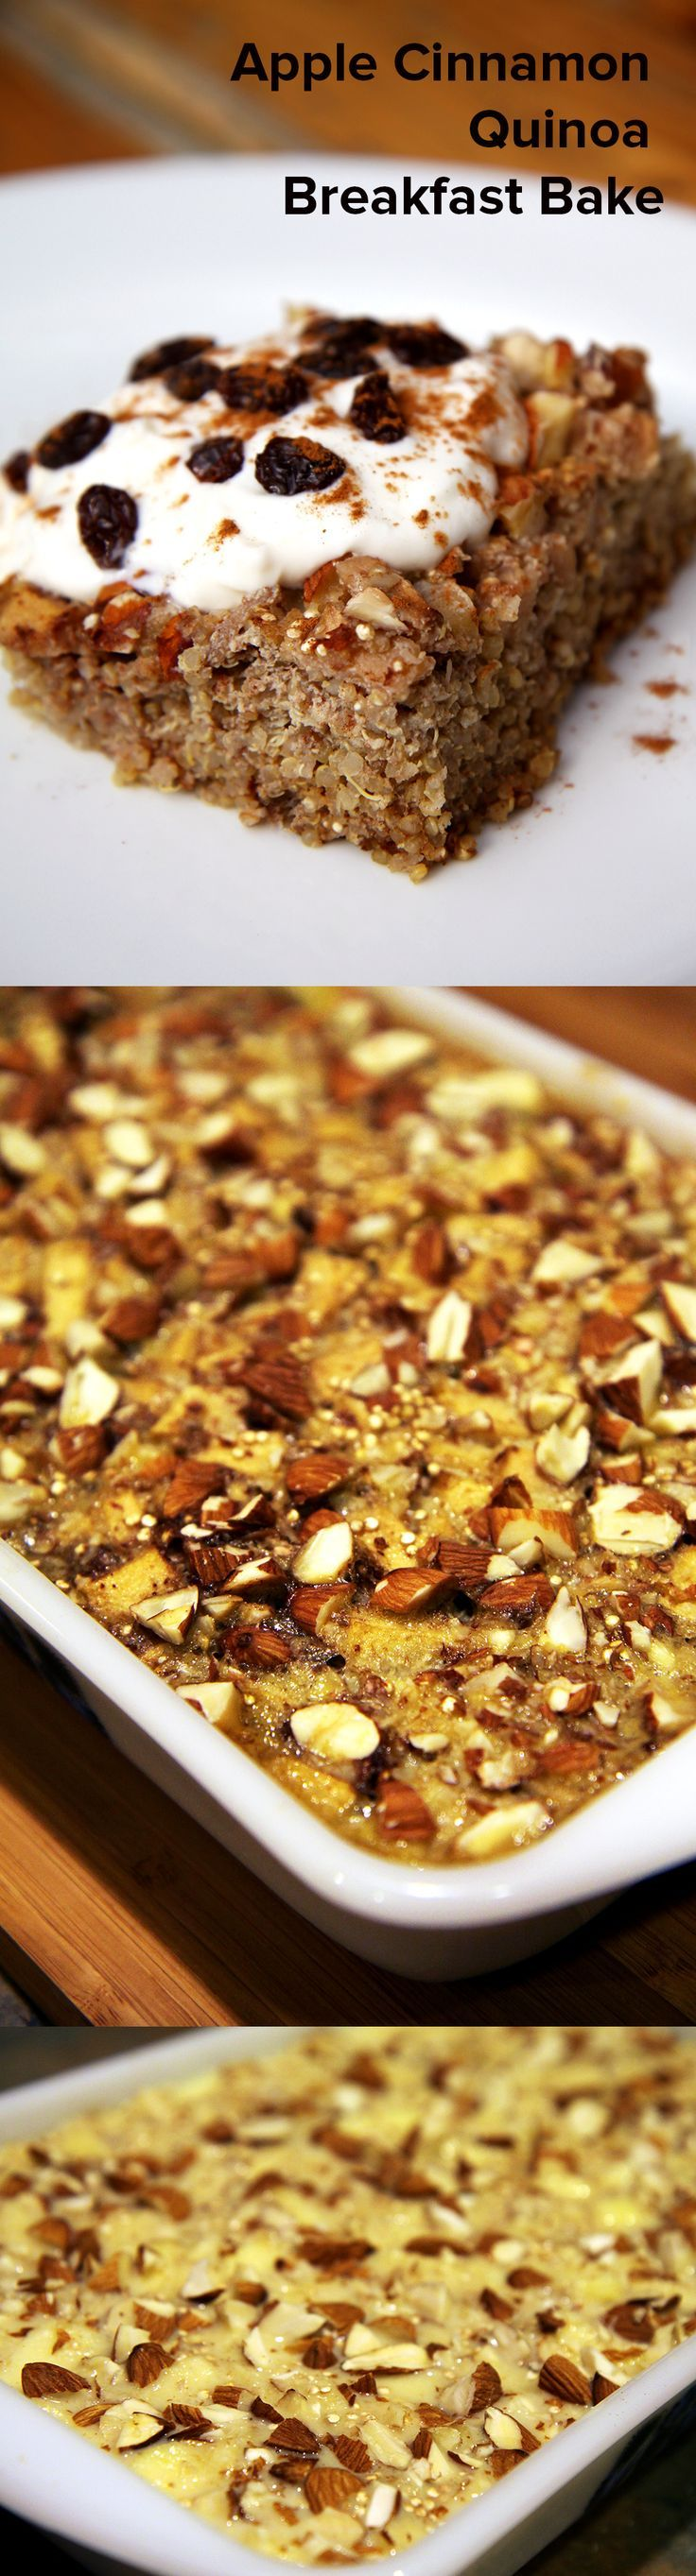 Quinoa breakfast, Breakfast bake and Apple cinnamon on Pinterest